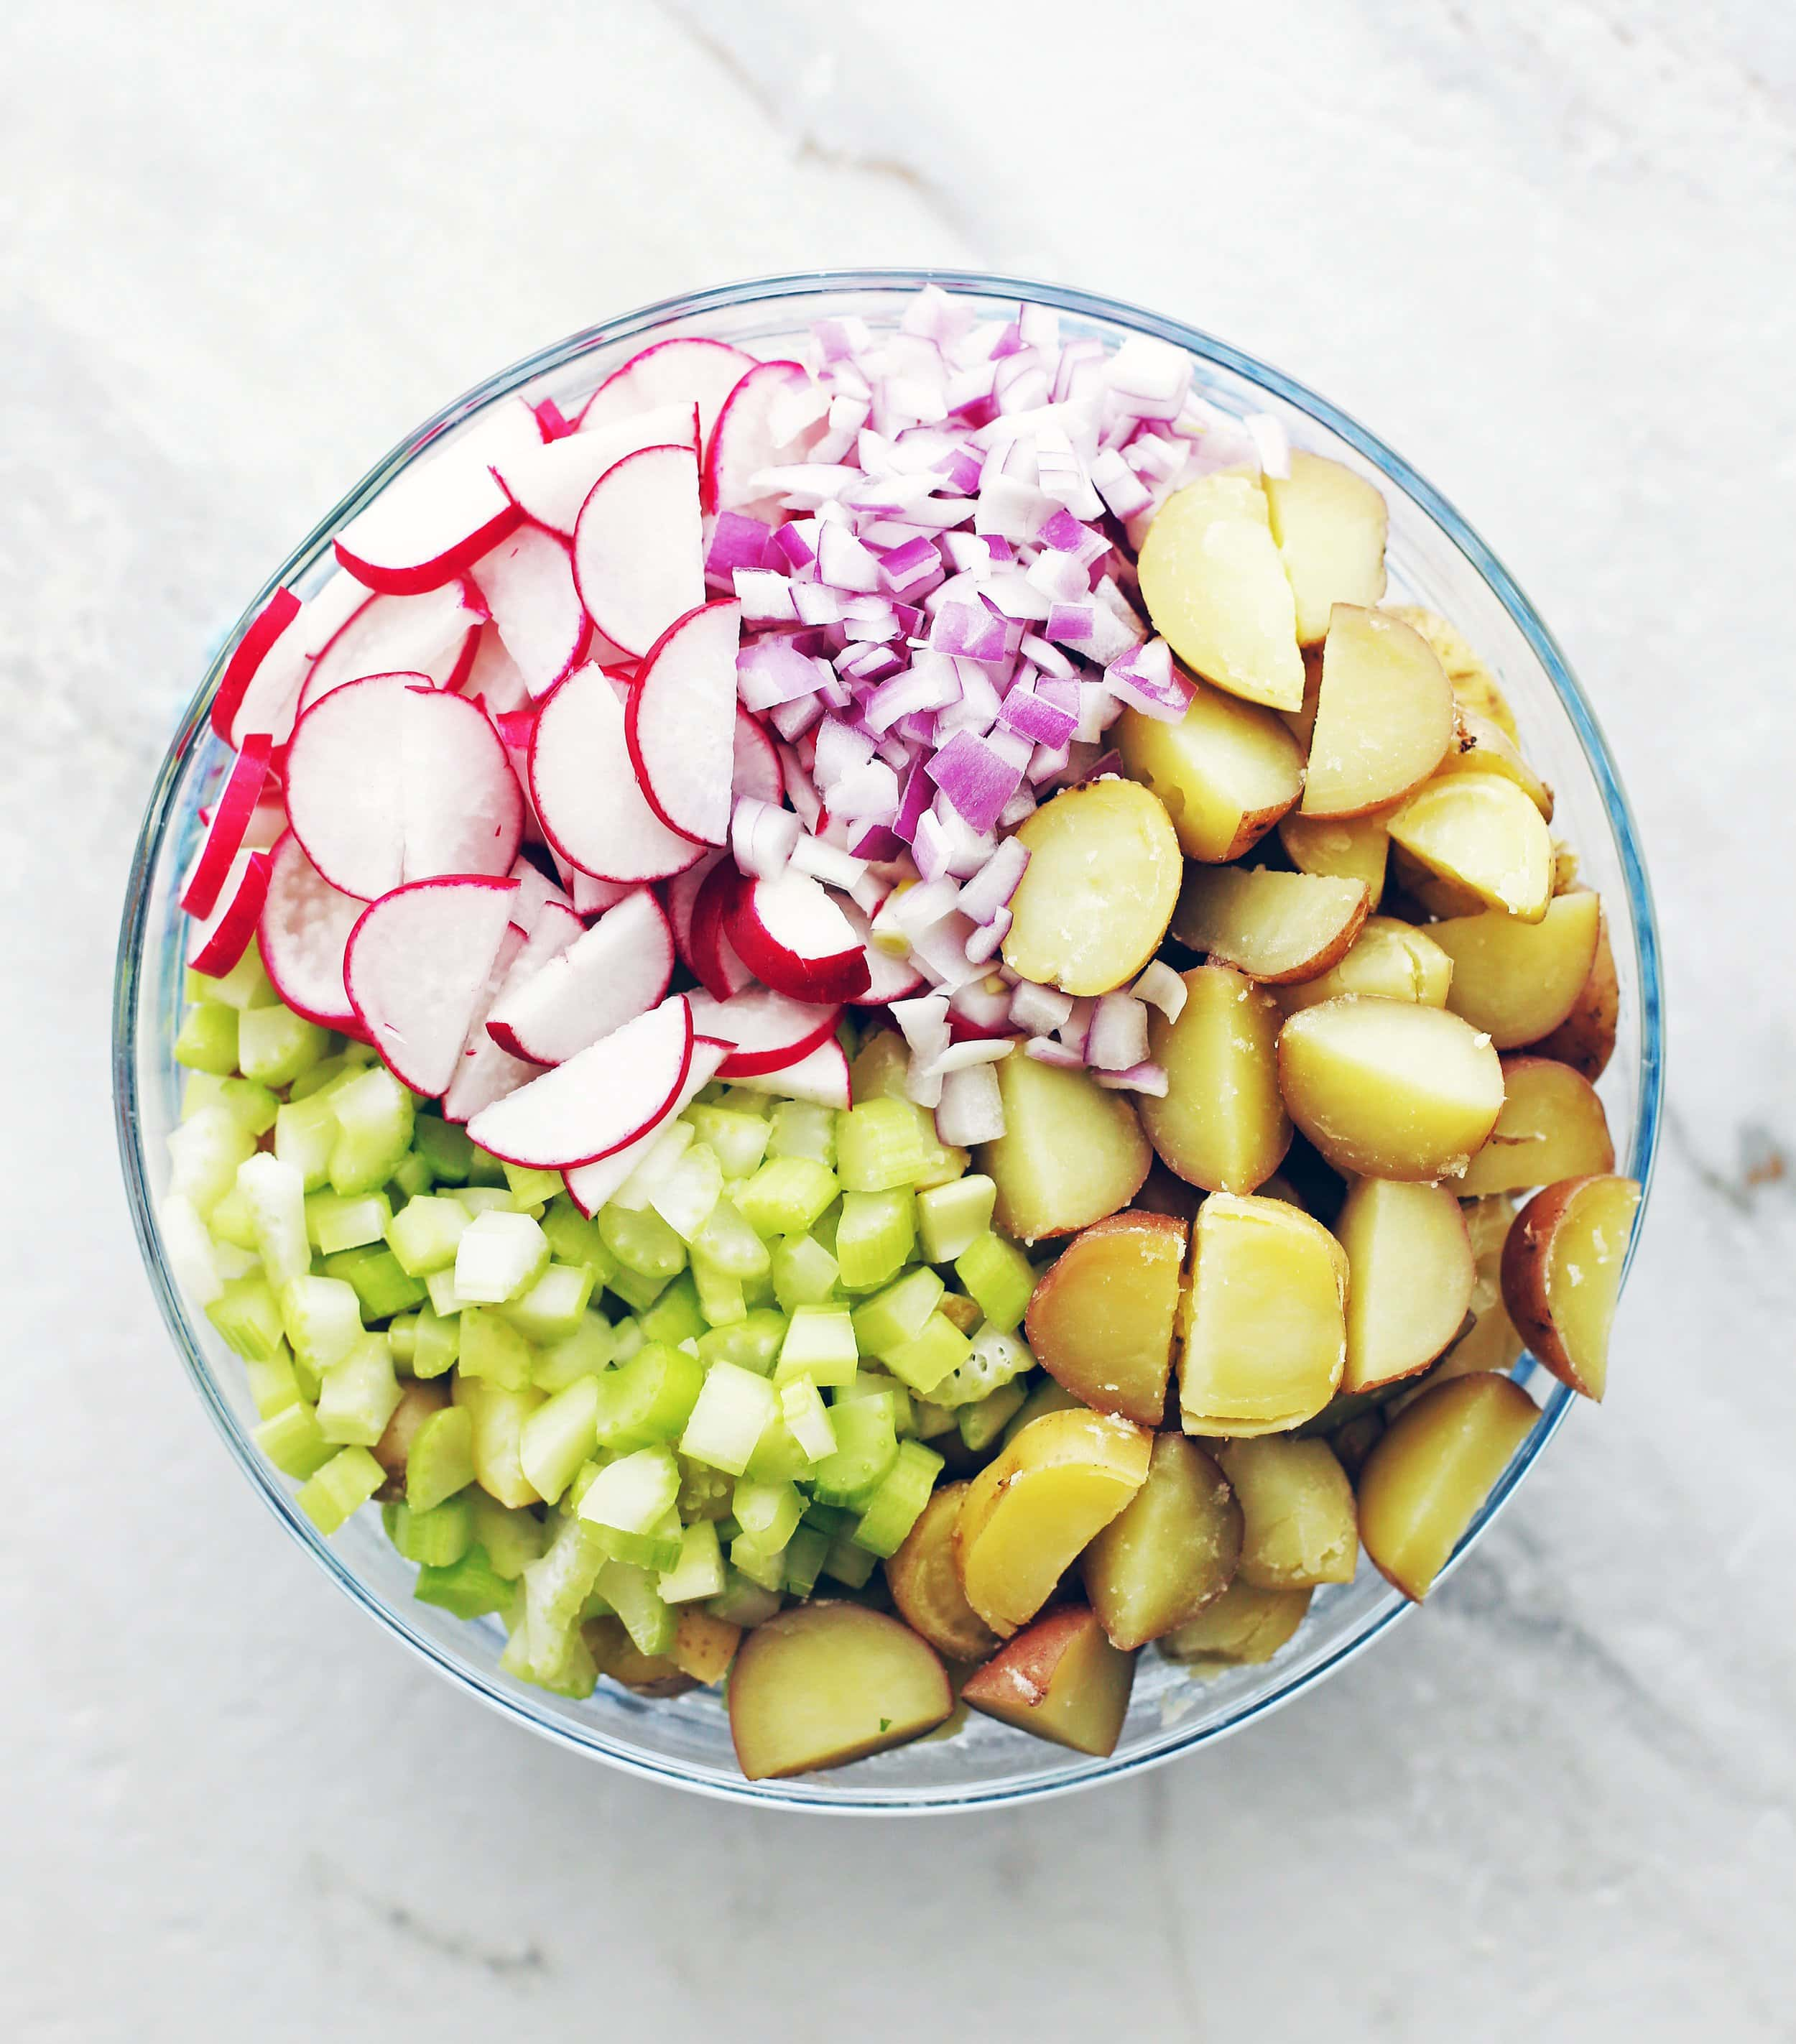 Boiled sliced potatoes, diced celery and red onions, and sliced radishes in a large glass bowl.